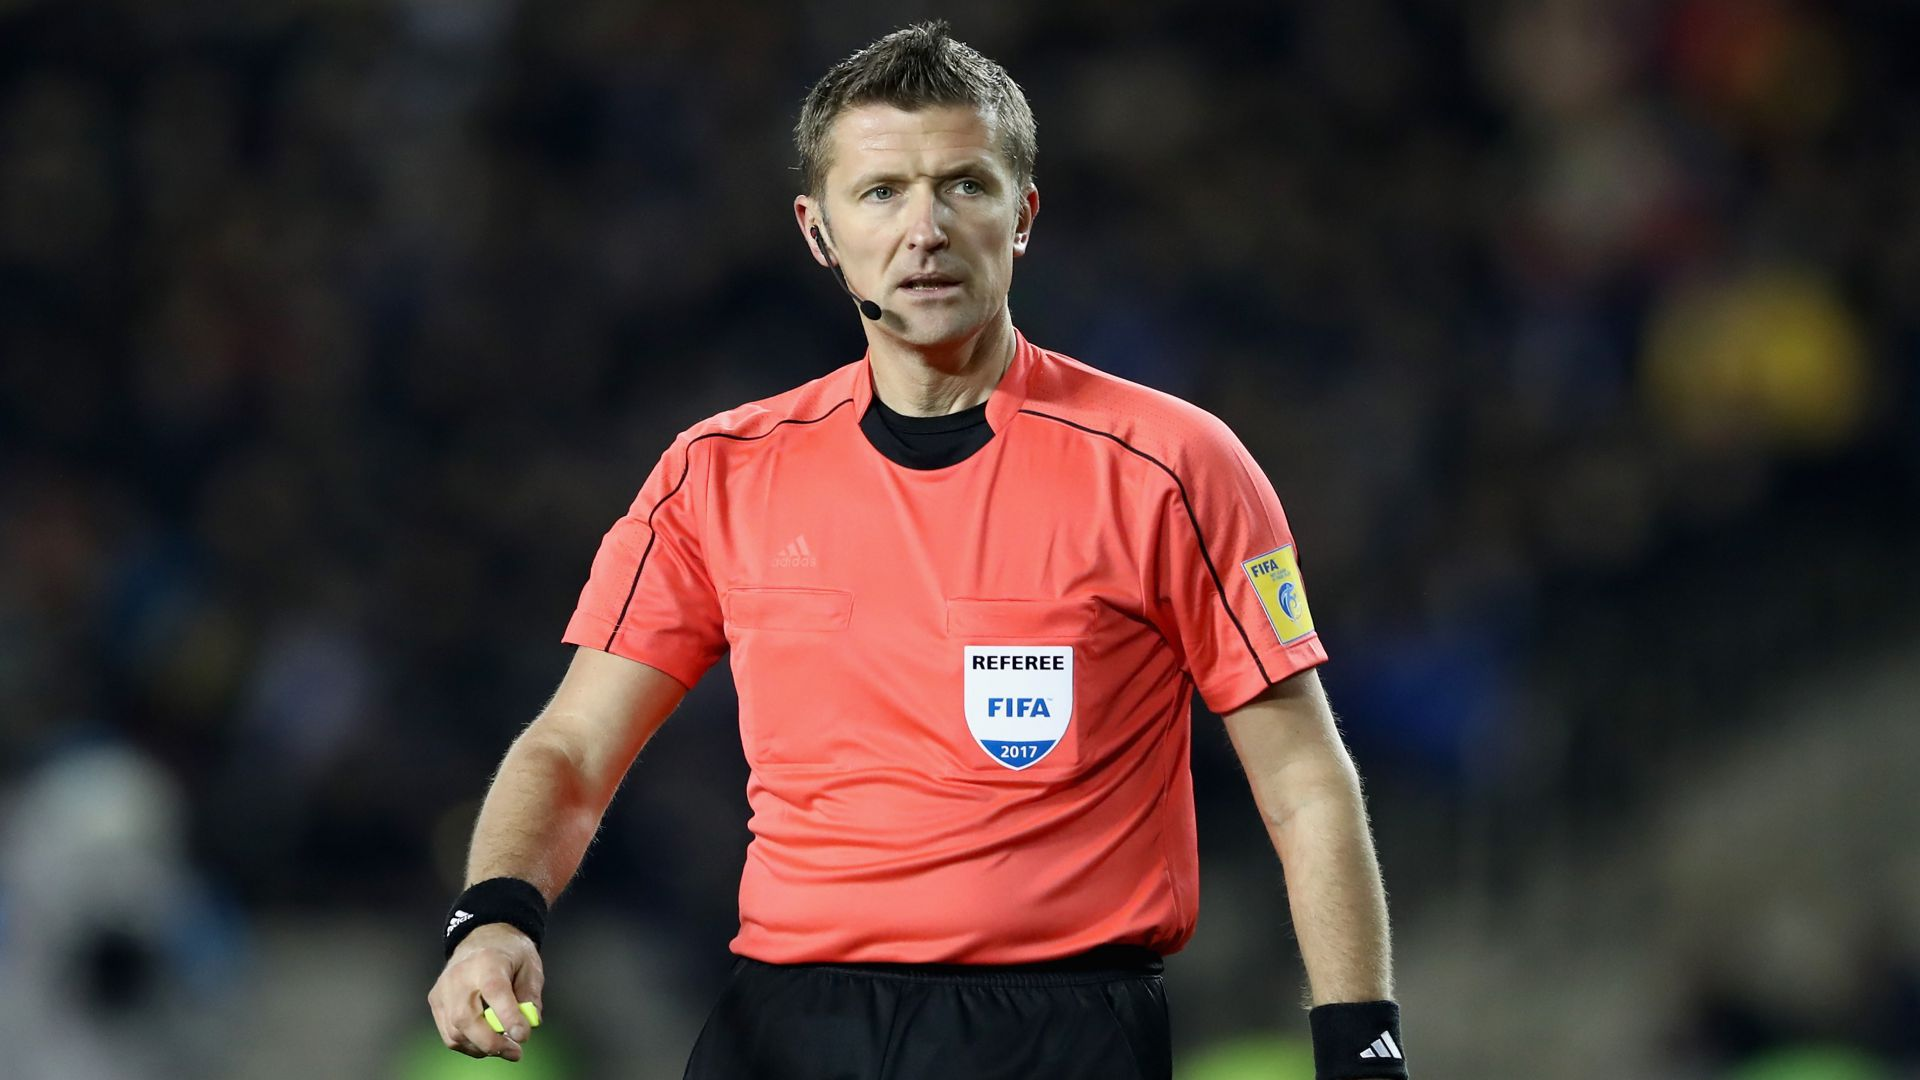 Daniele Orsato referee